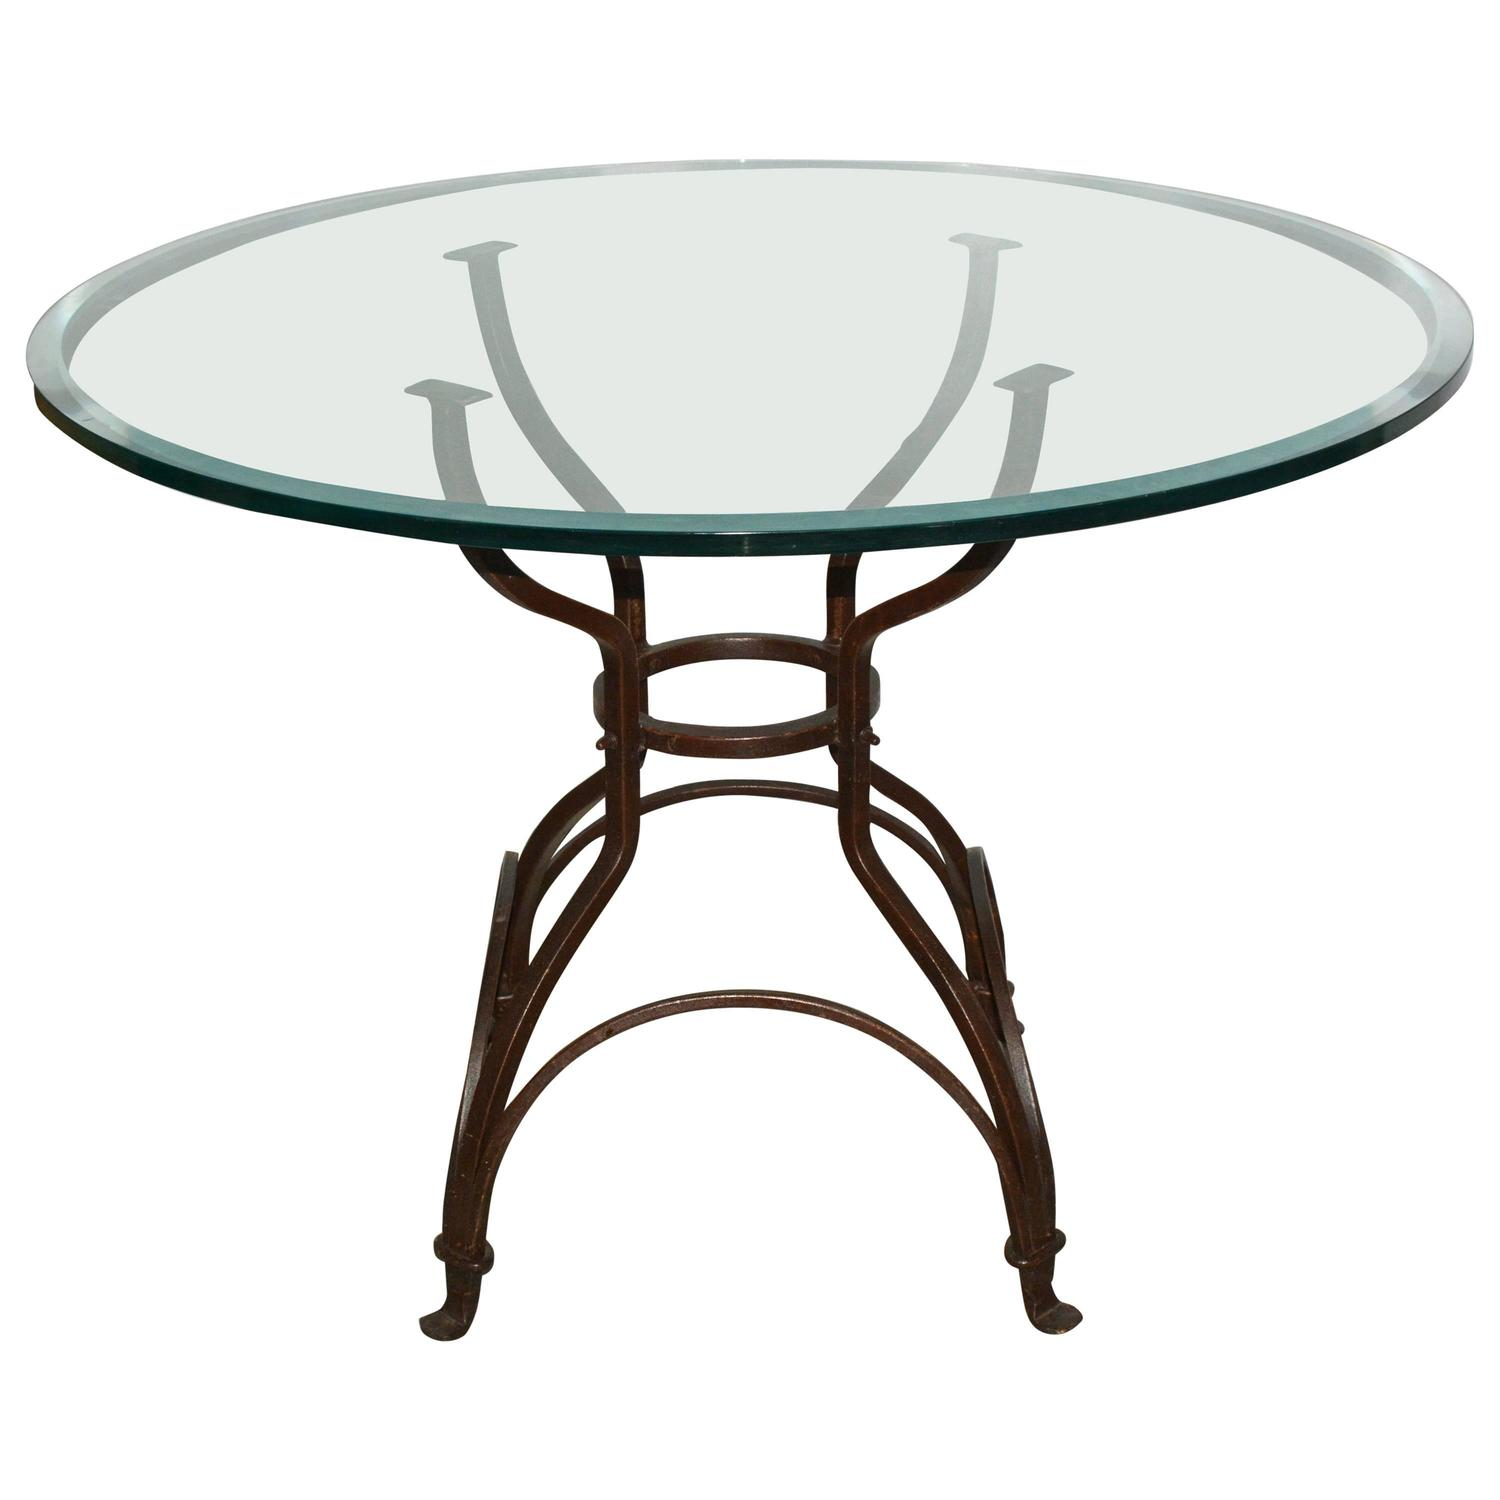 Round Garden Patio Dining Table with Mesh Top Attributed to